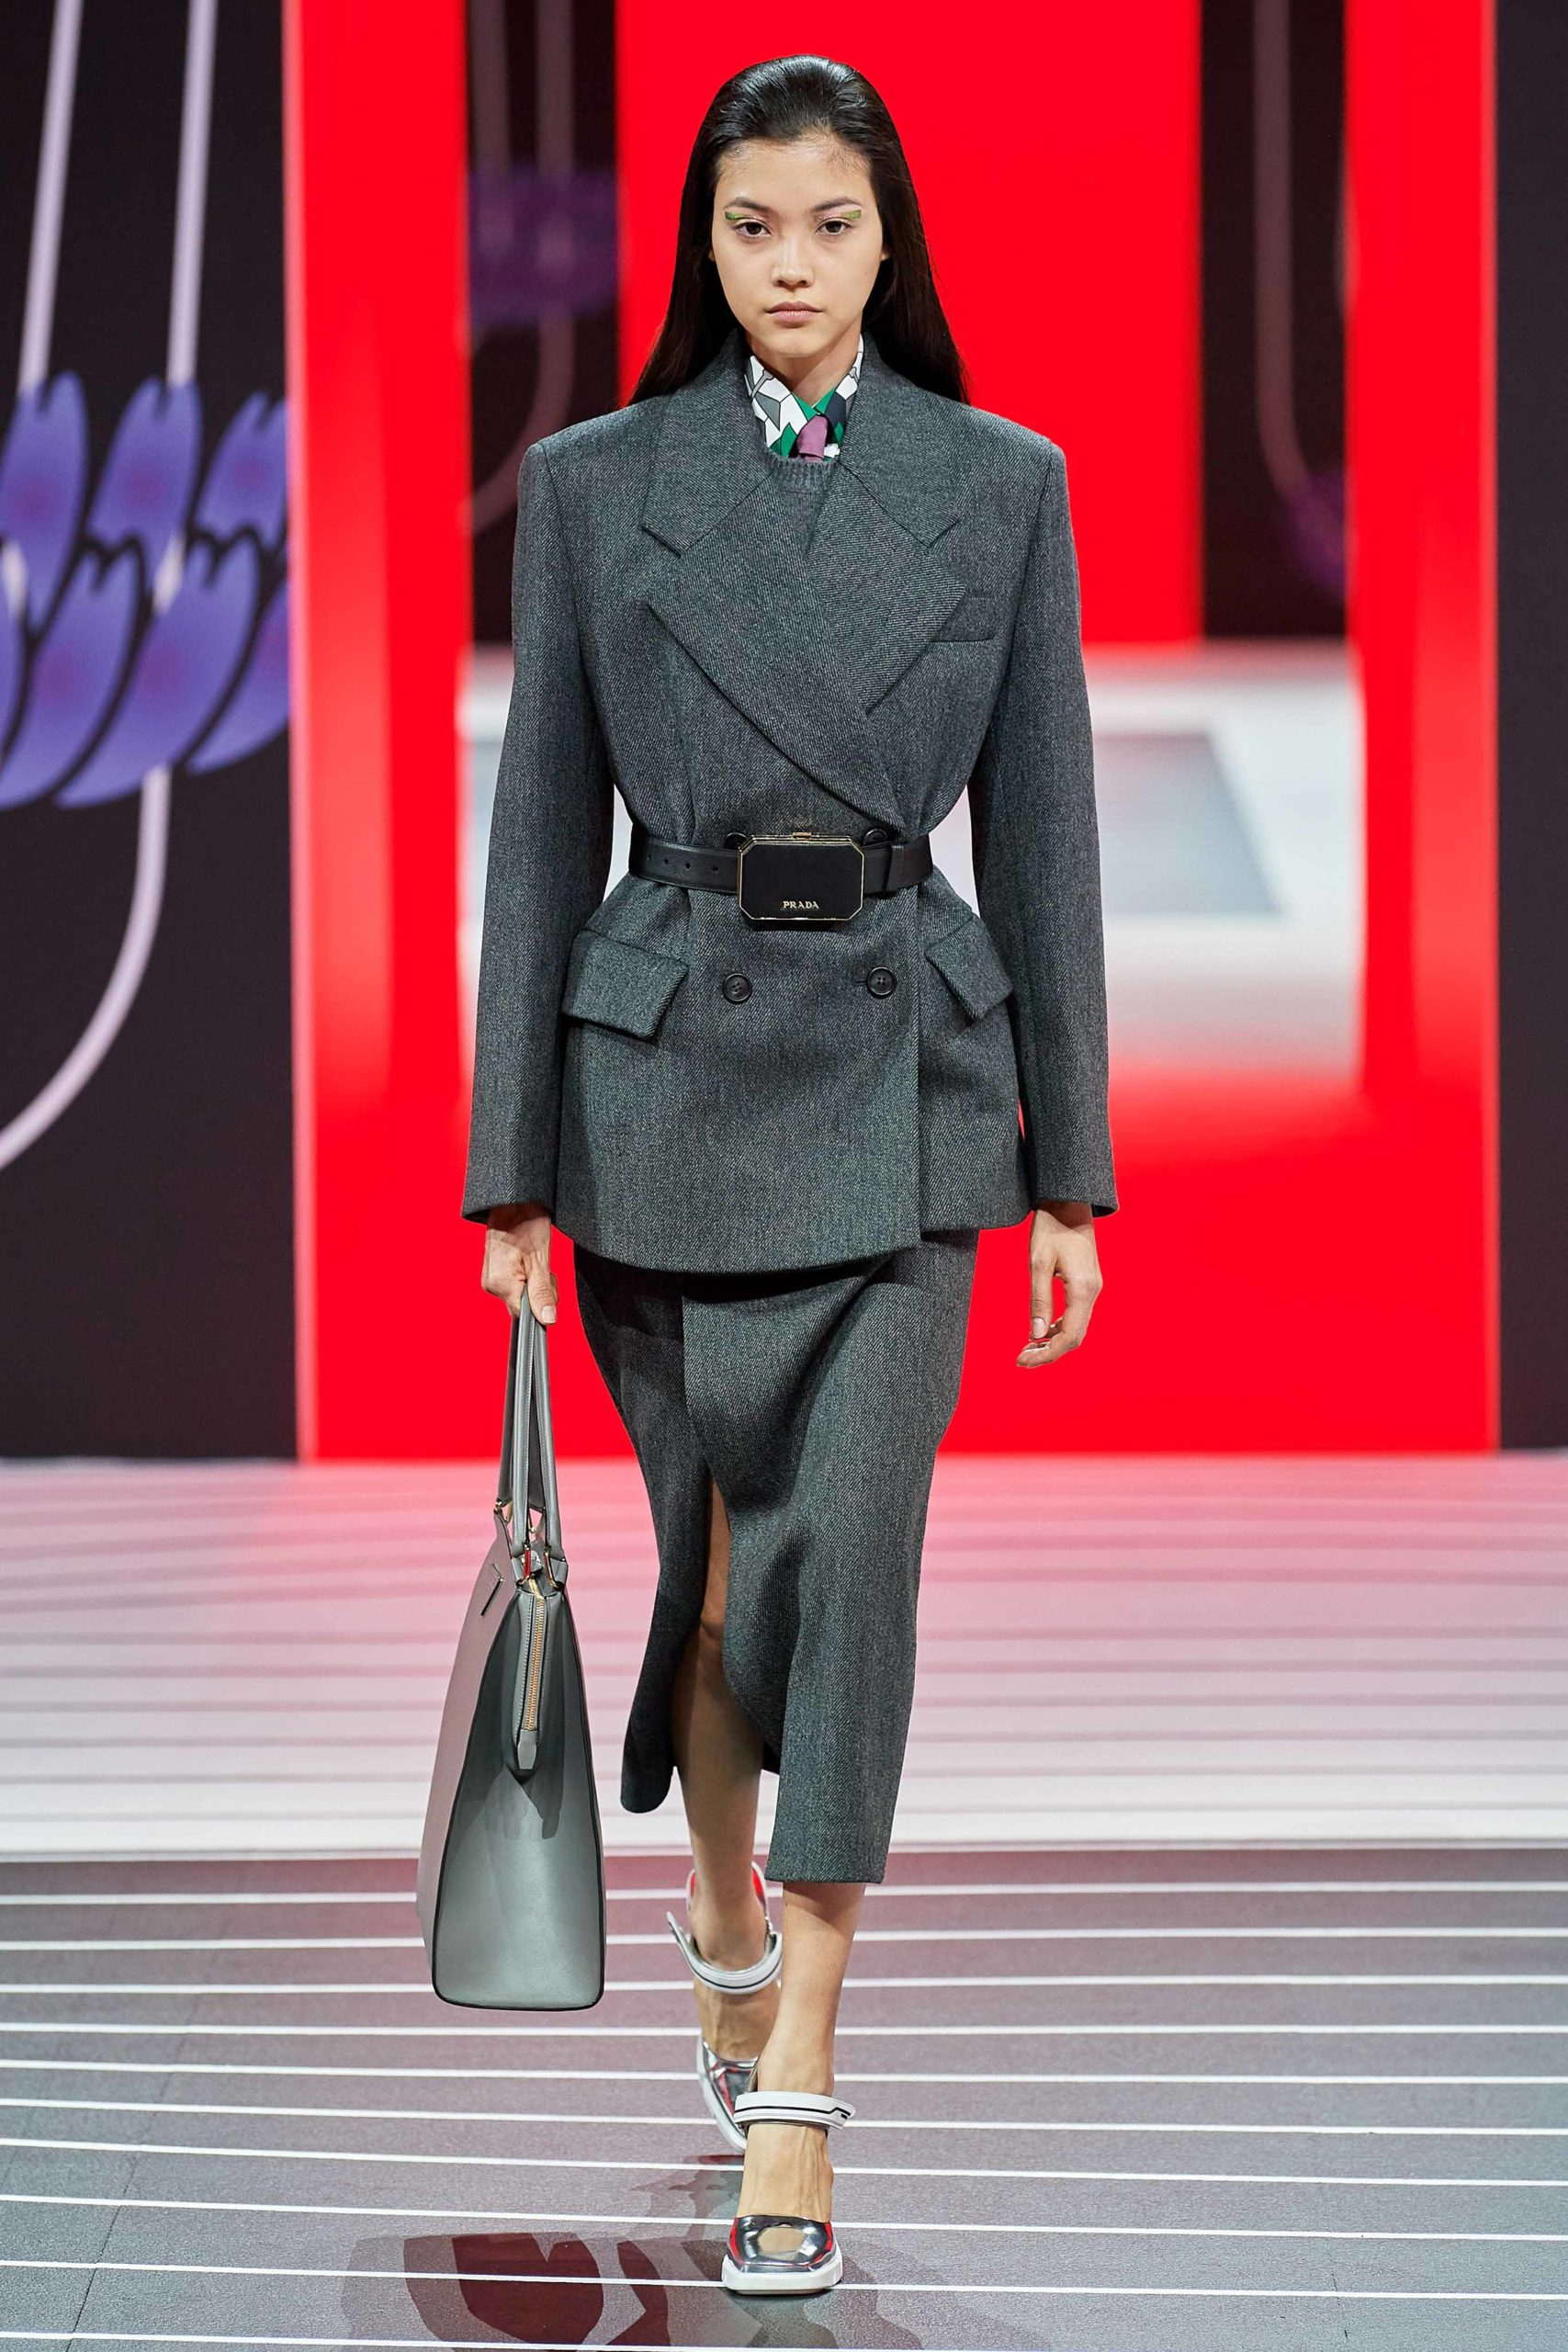 Prada Fall 2020 trends runway coverage Ready To Wear Vogue stailleur skirt skirt suit